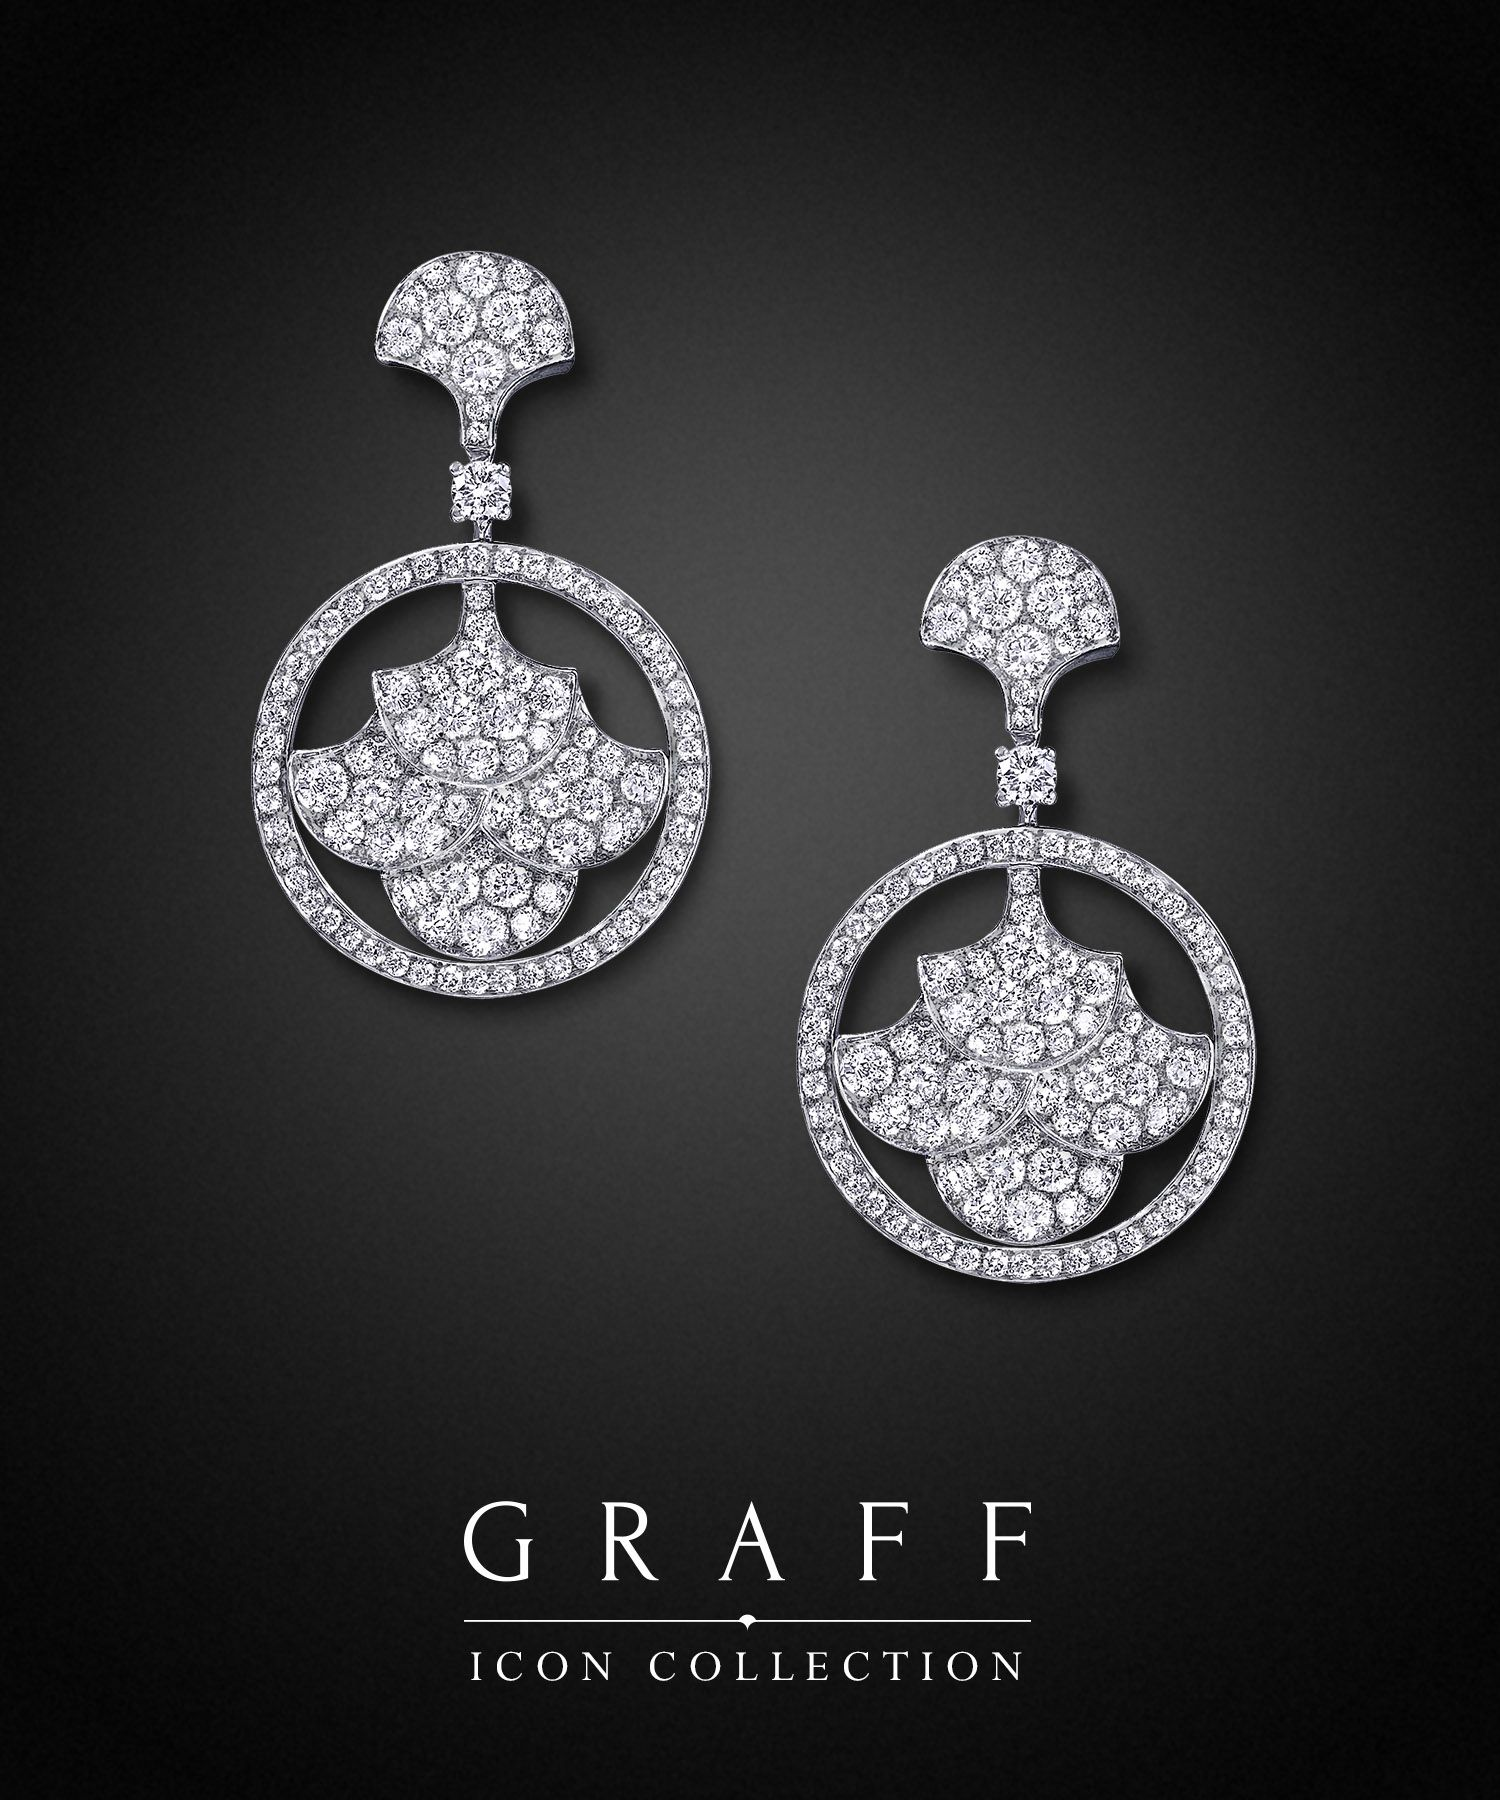 pair emerald featuring graff classic earrings a of square collections with diamonds diamond cut pave hooks swan